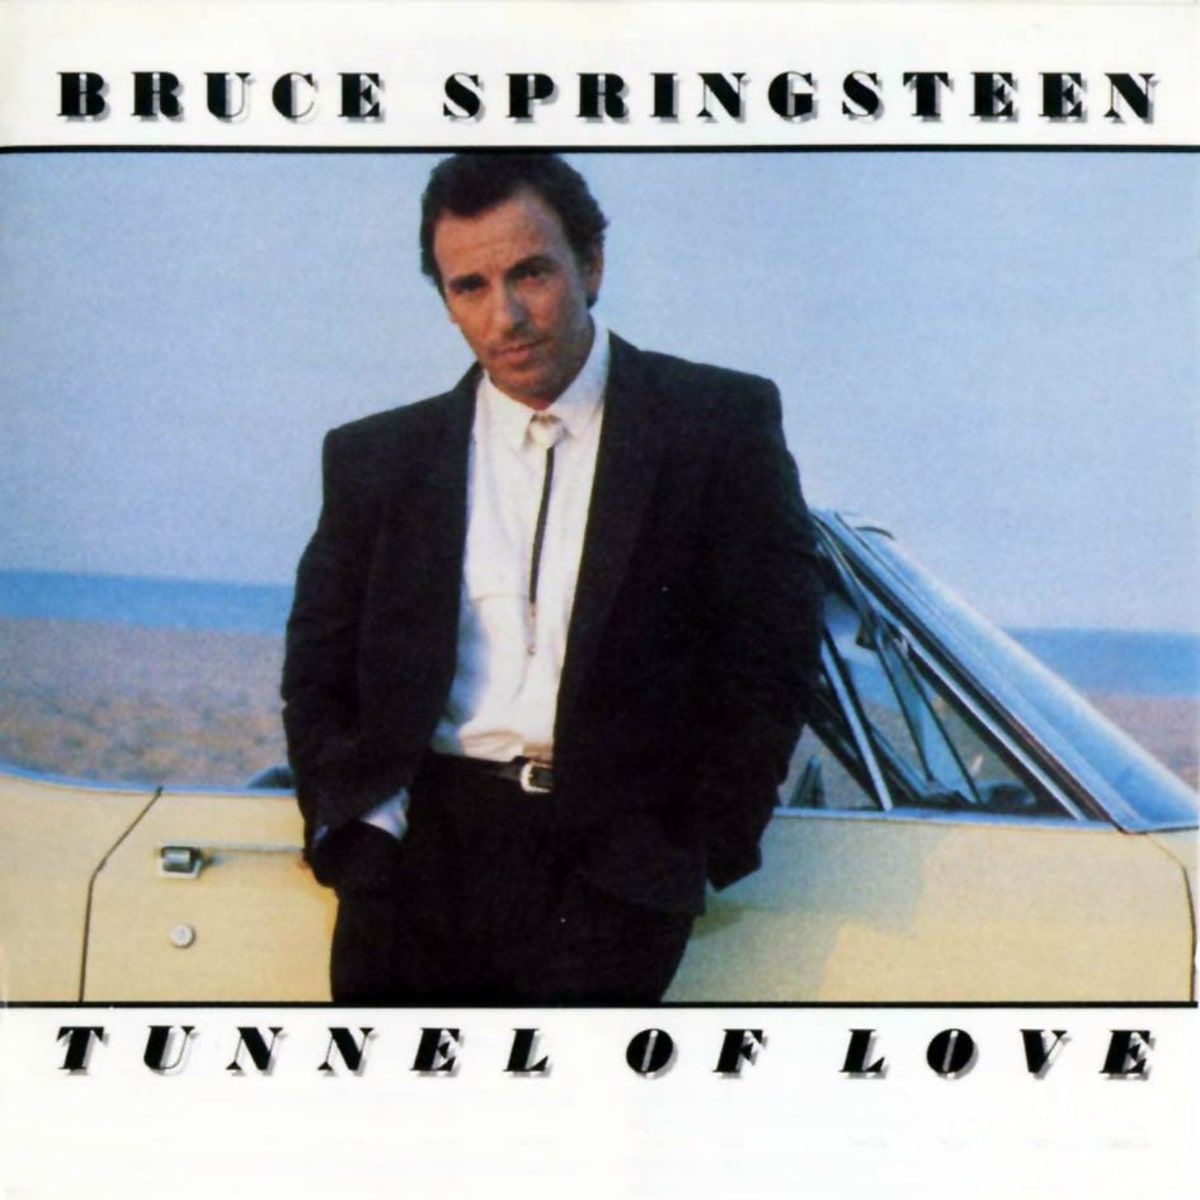 100 Best Albums Of The Eighties Bruce Springsteen Tunnel Of Love Bruce Springsteen Albums